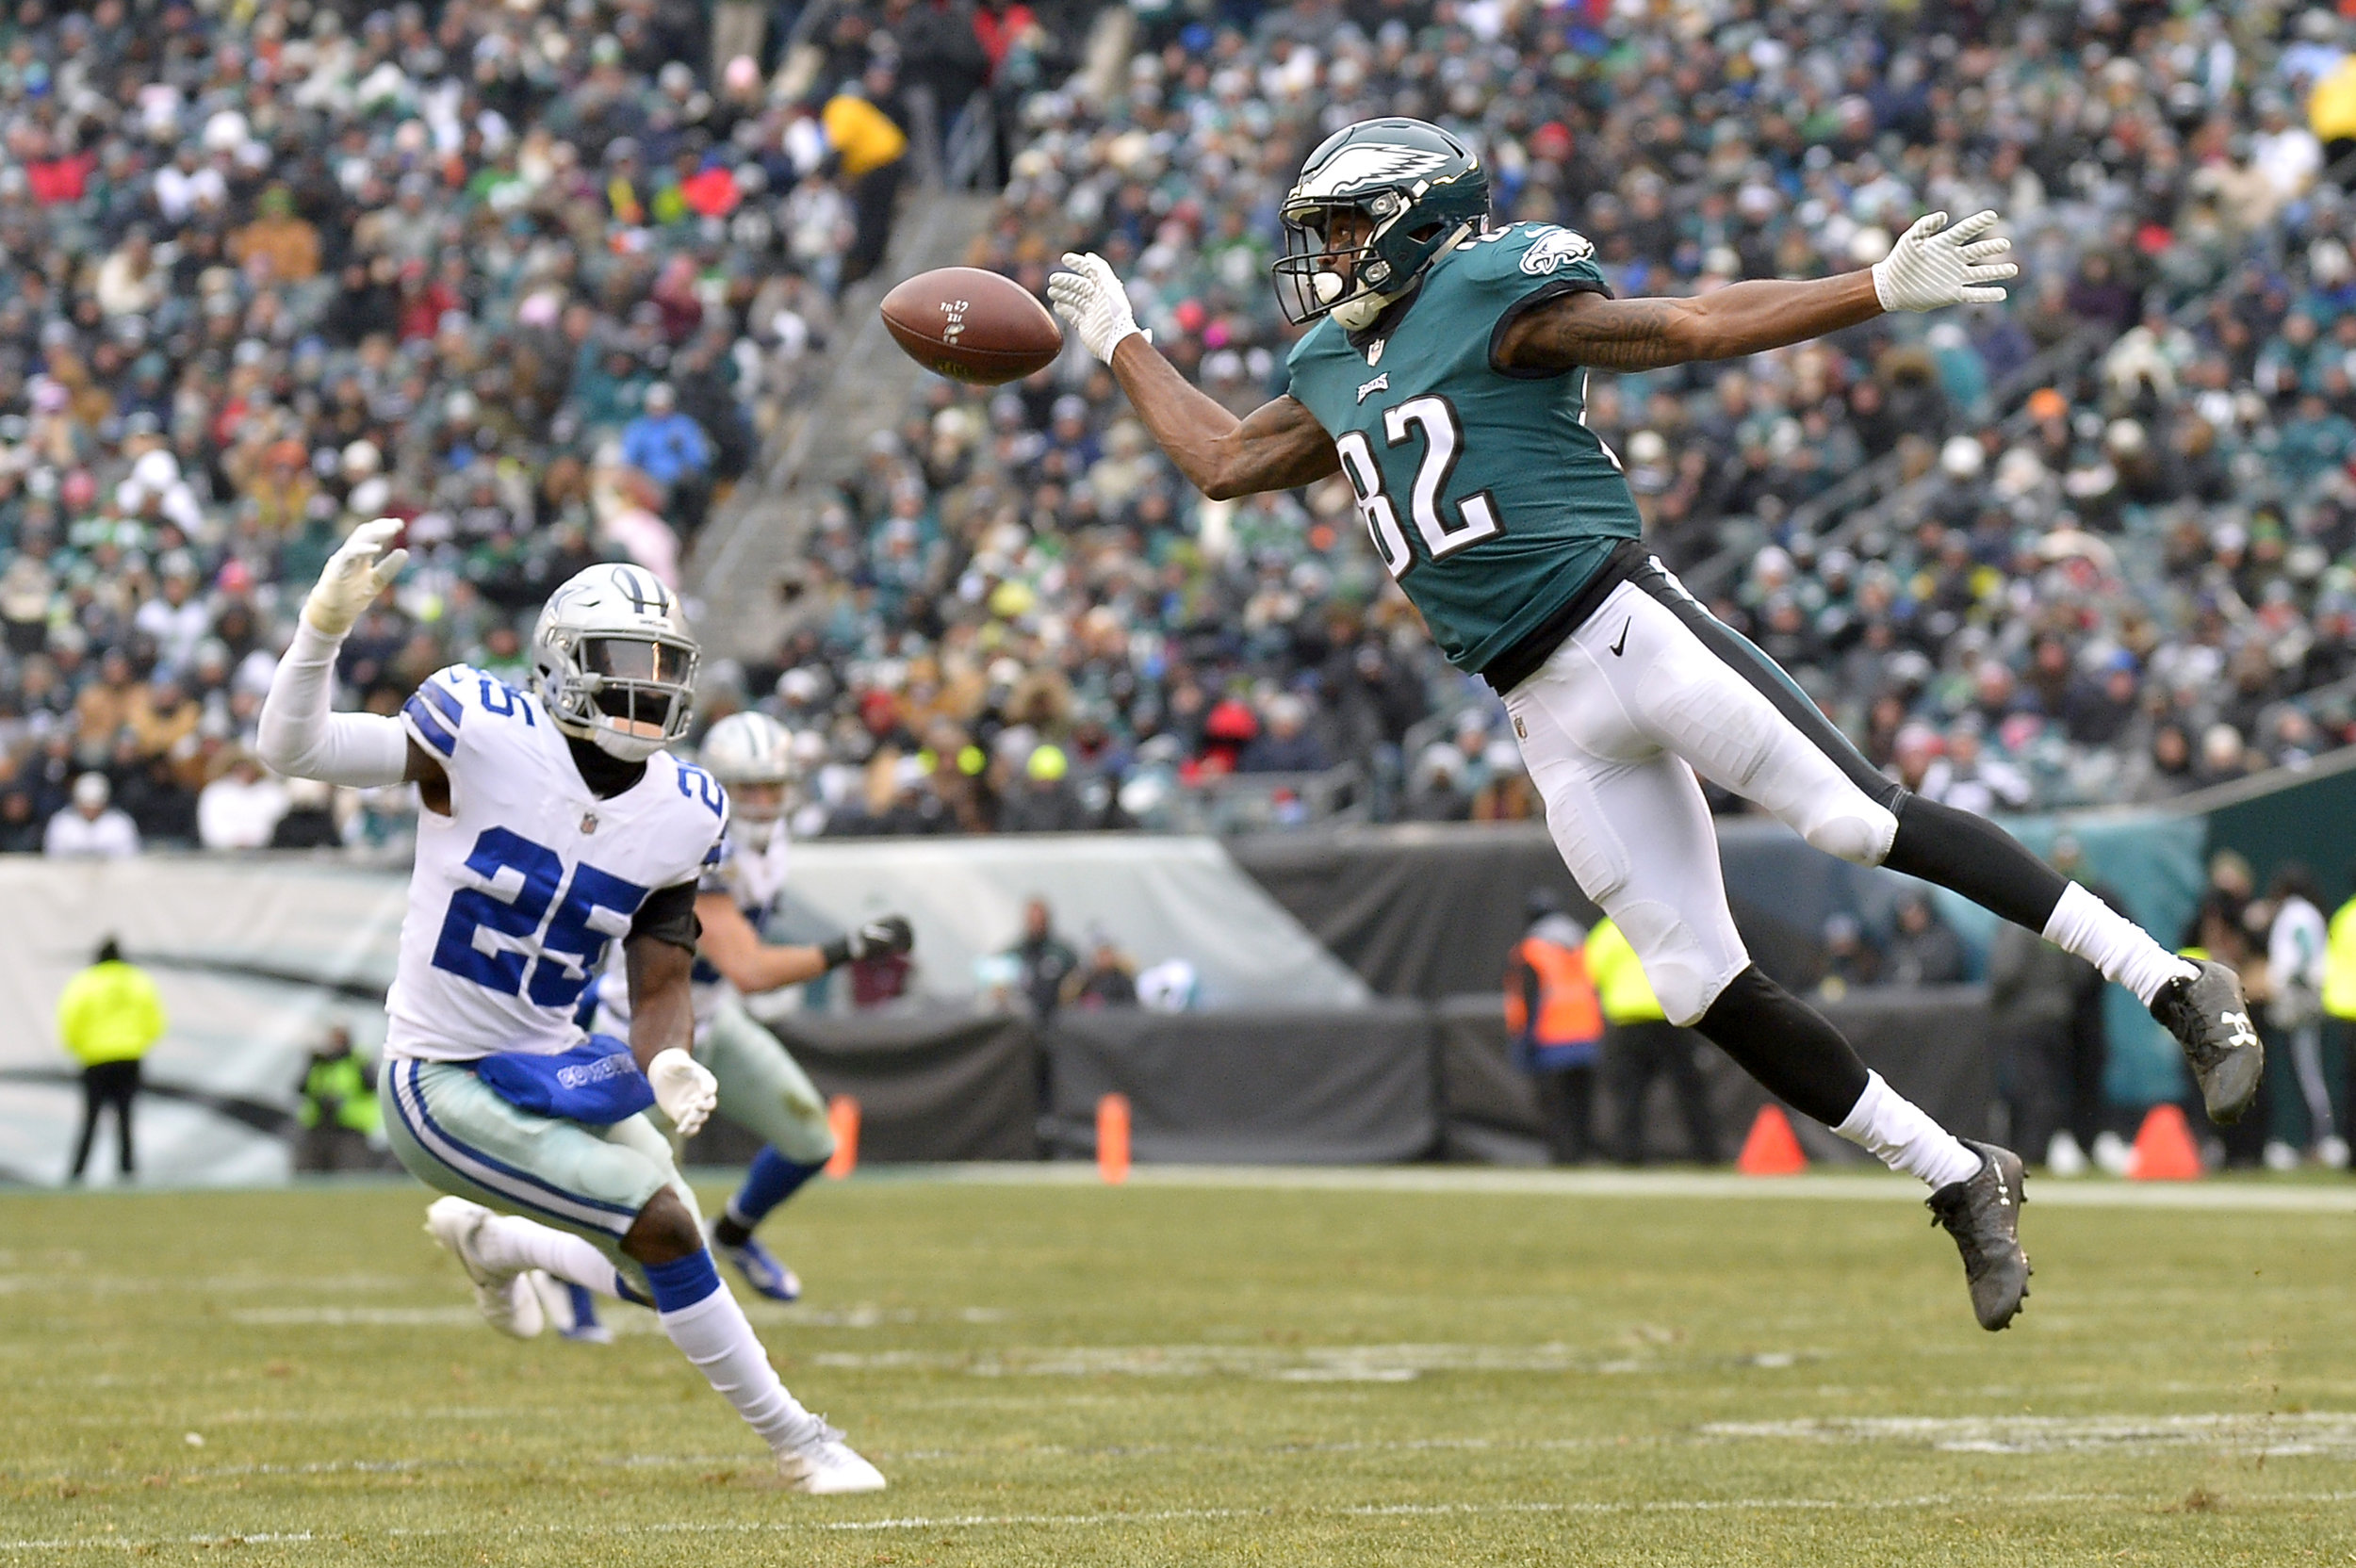 PHILADELPHIA, PA - DECEMBER 31: Philadelphia Eagles wide receiver Torrey Smith (82) reaches for the pass during the NFL game between the Dallas Cowboys and the Philadelphia Eagles on December 31, 2017 at Lincoln Financial Field in Philadelphia PA. (Photo by Gavin Baker/Icon Sportswire) © Icon Sportswire